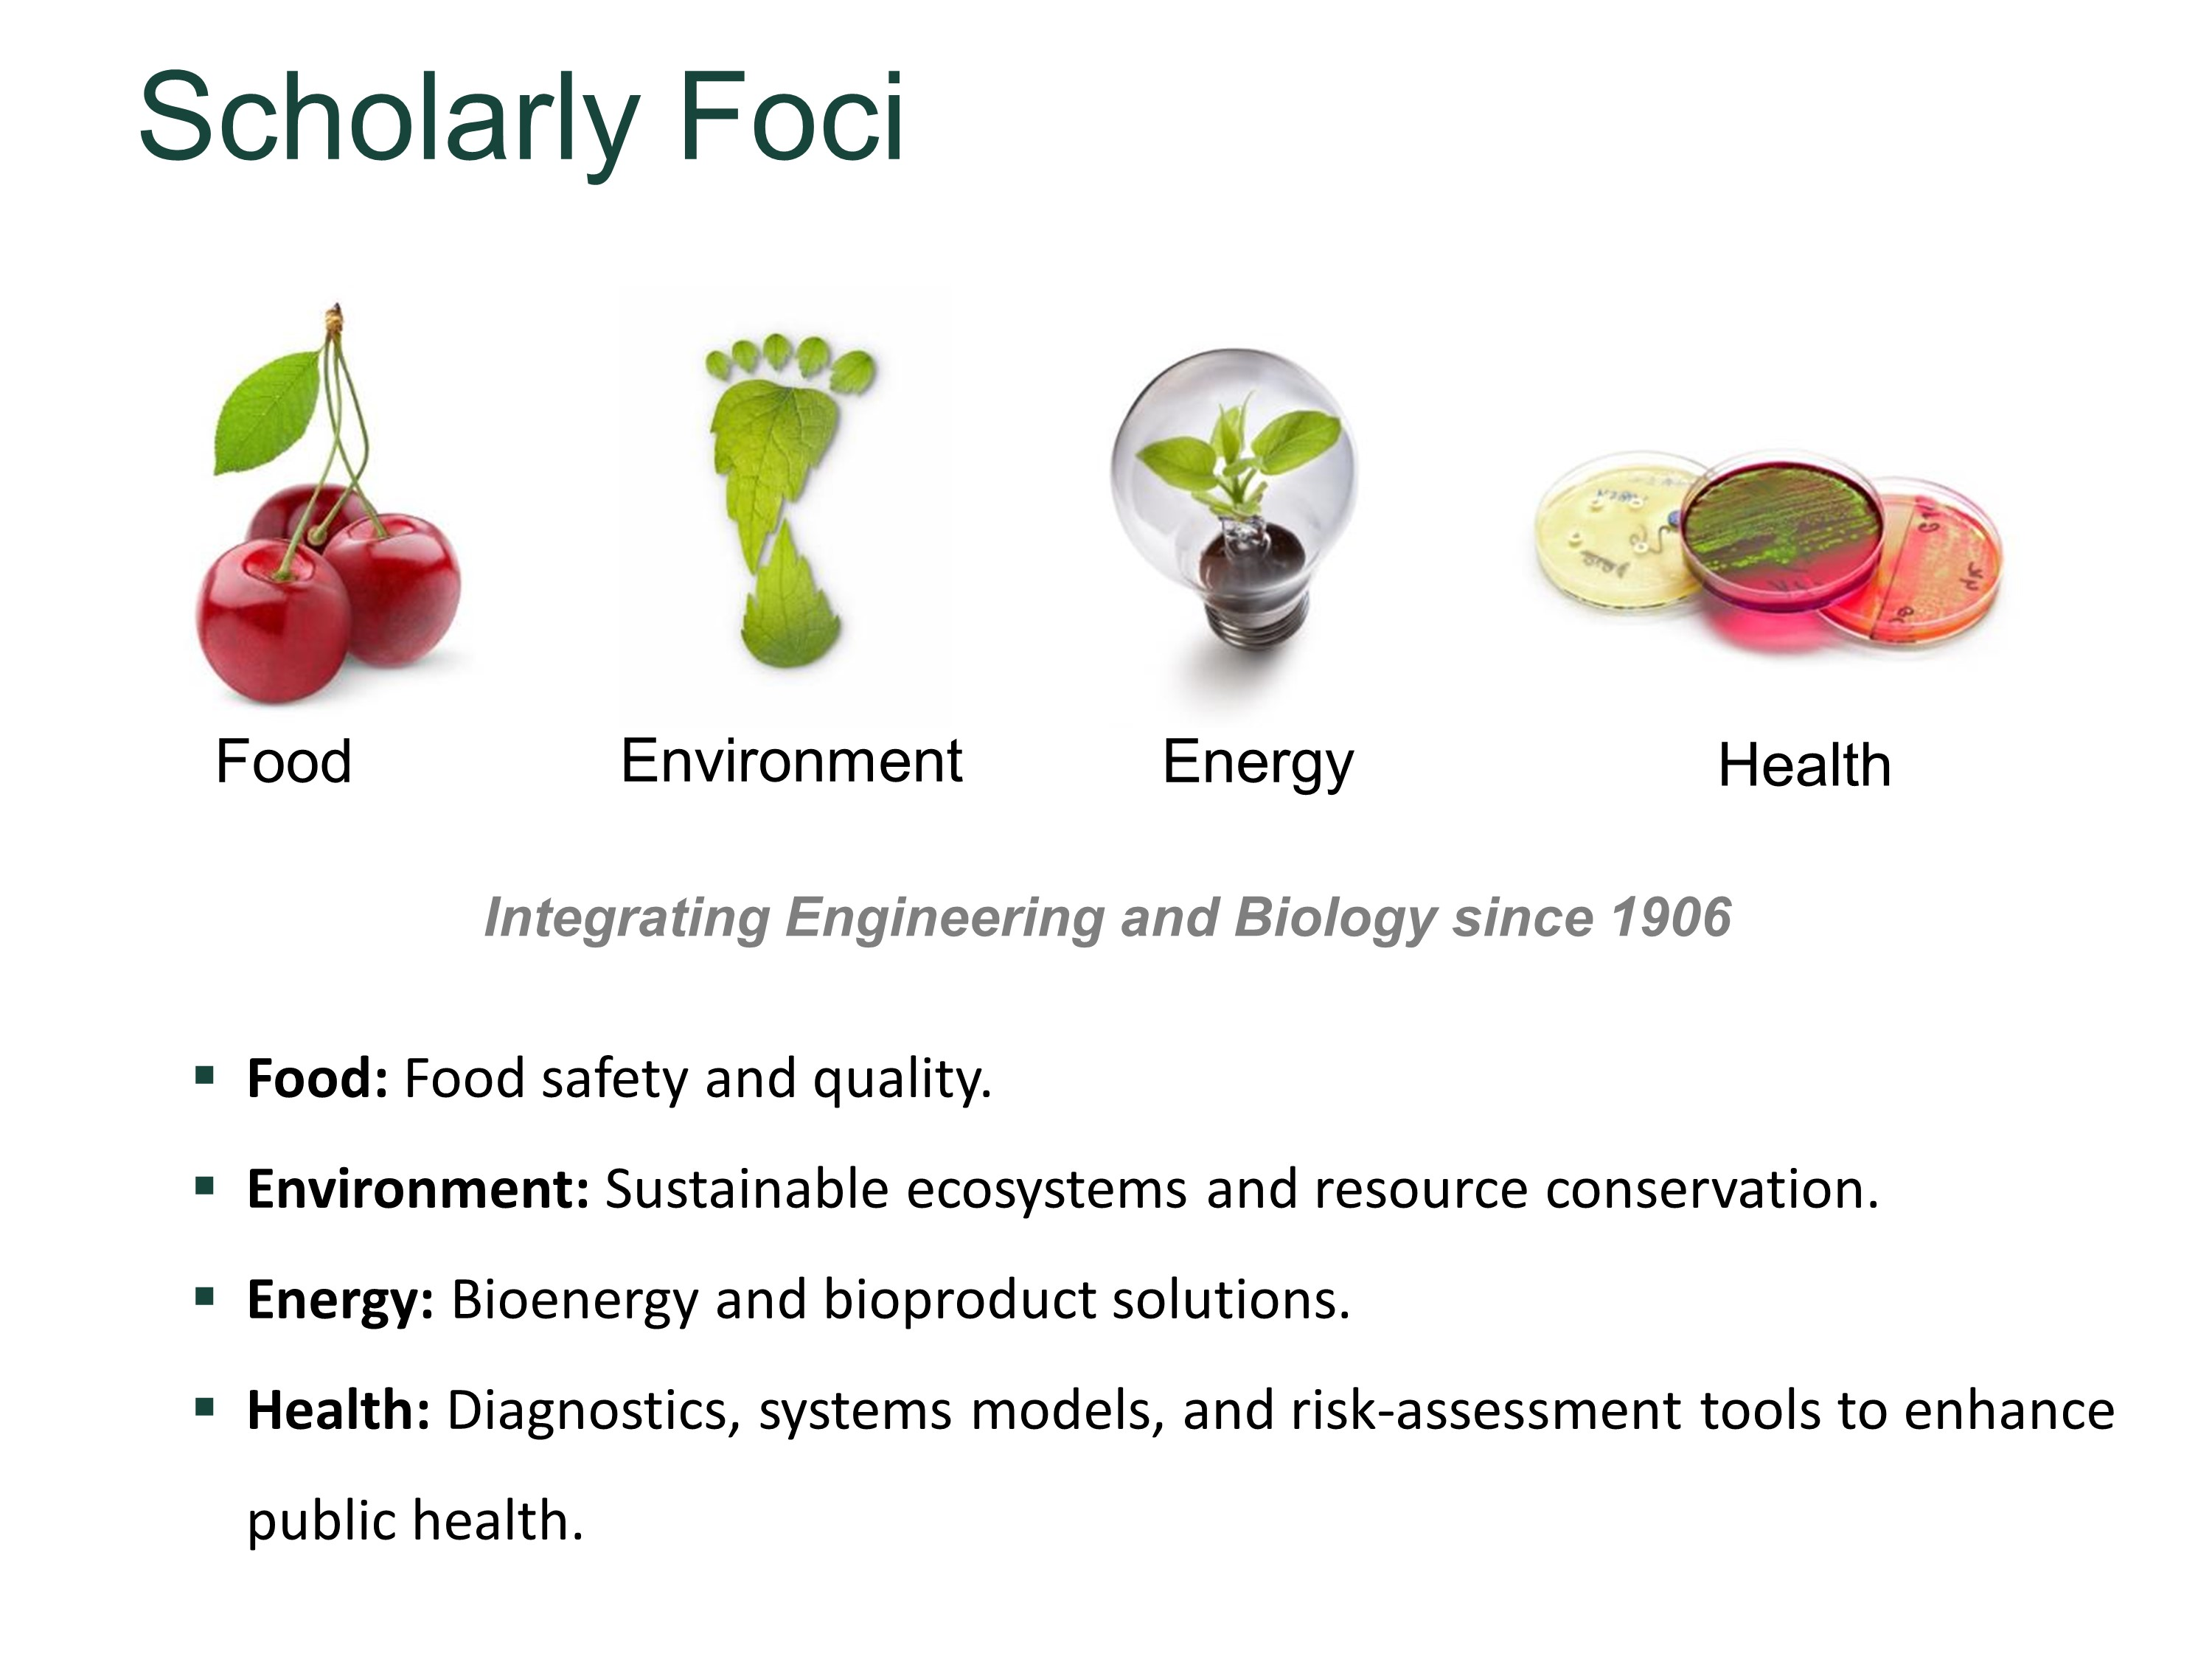 Research Foci: Food quality, safety and biosecurity; sustainable ecosystems; renewable bioenergy. Integrating Engineering and Biology since 1906.